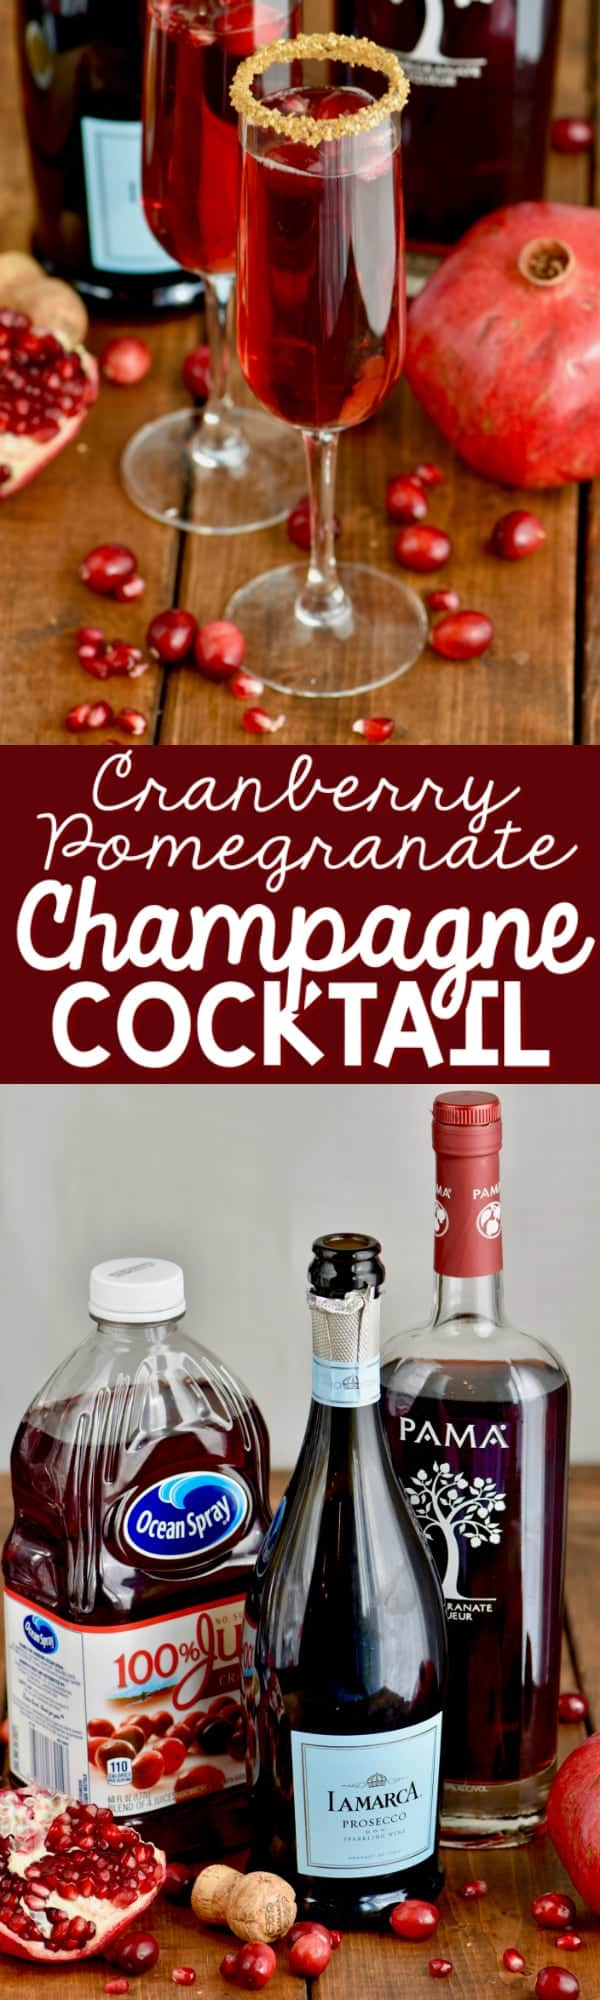 This Cranberry Pomegranate Champagne Cocktail is the perfect holiday drink! Made with pomegranate liquor, cranberry juice, and champagne, you are only three ingredients away from the best holiday drink!